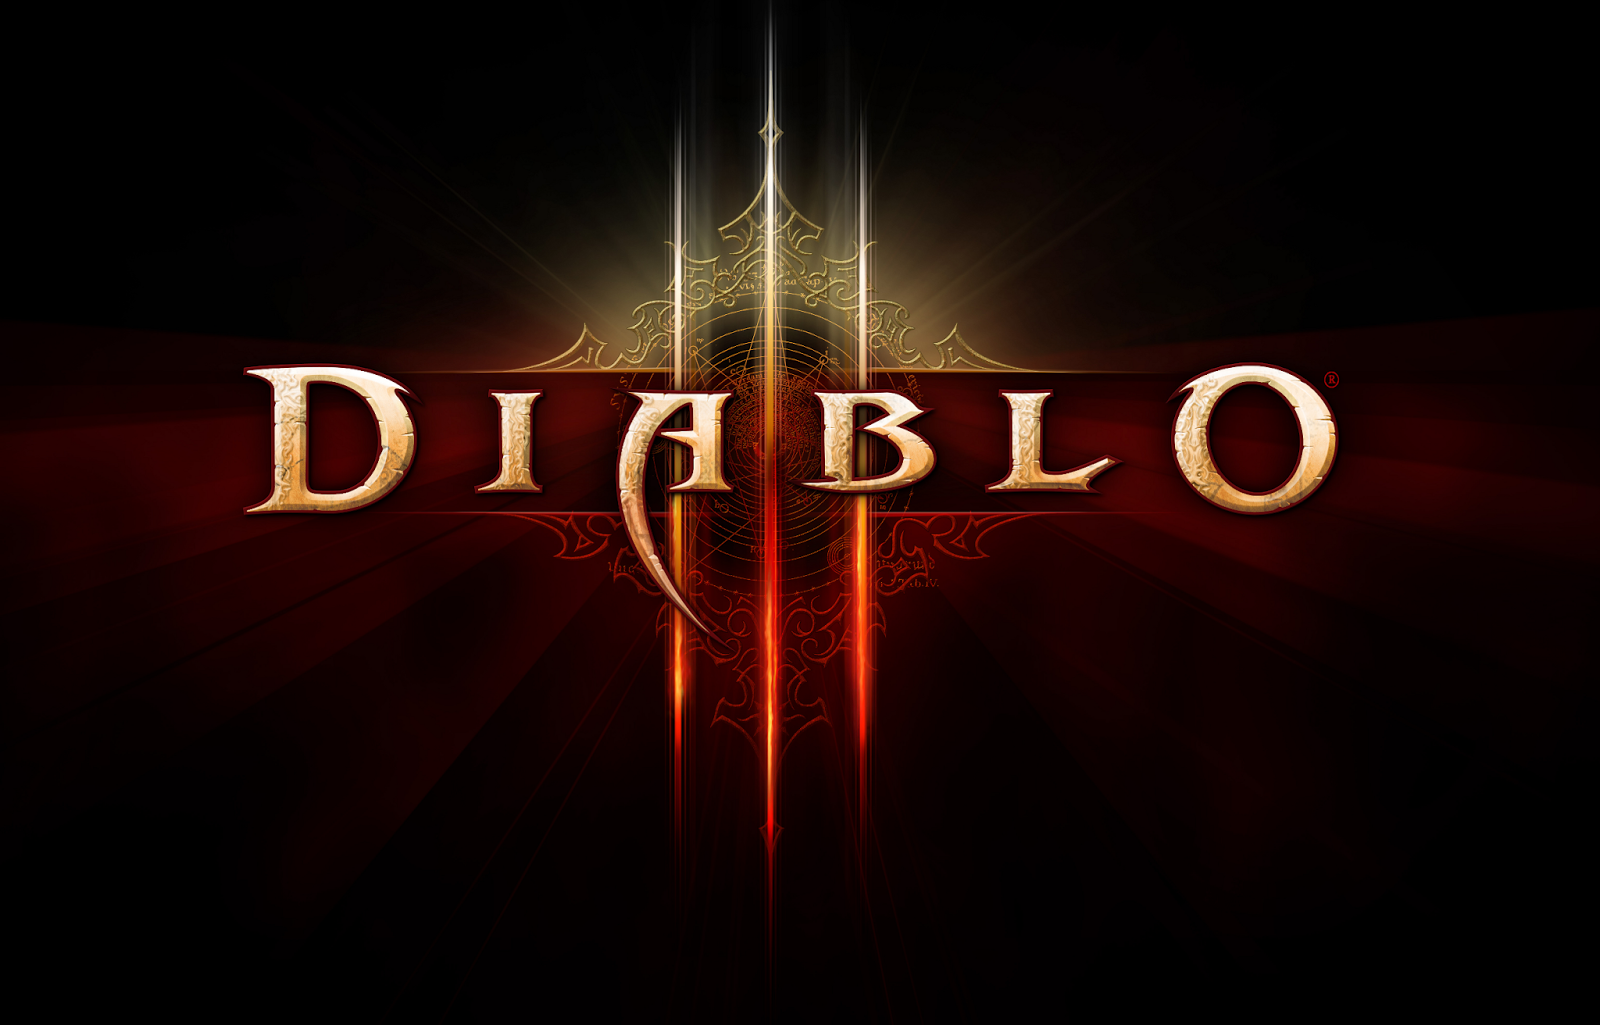 neal wojahn new job i am very happy to say that i have officially got my first professional artist job blizzard on the diablo 3 team up until this point i have been